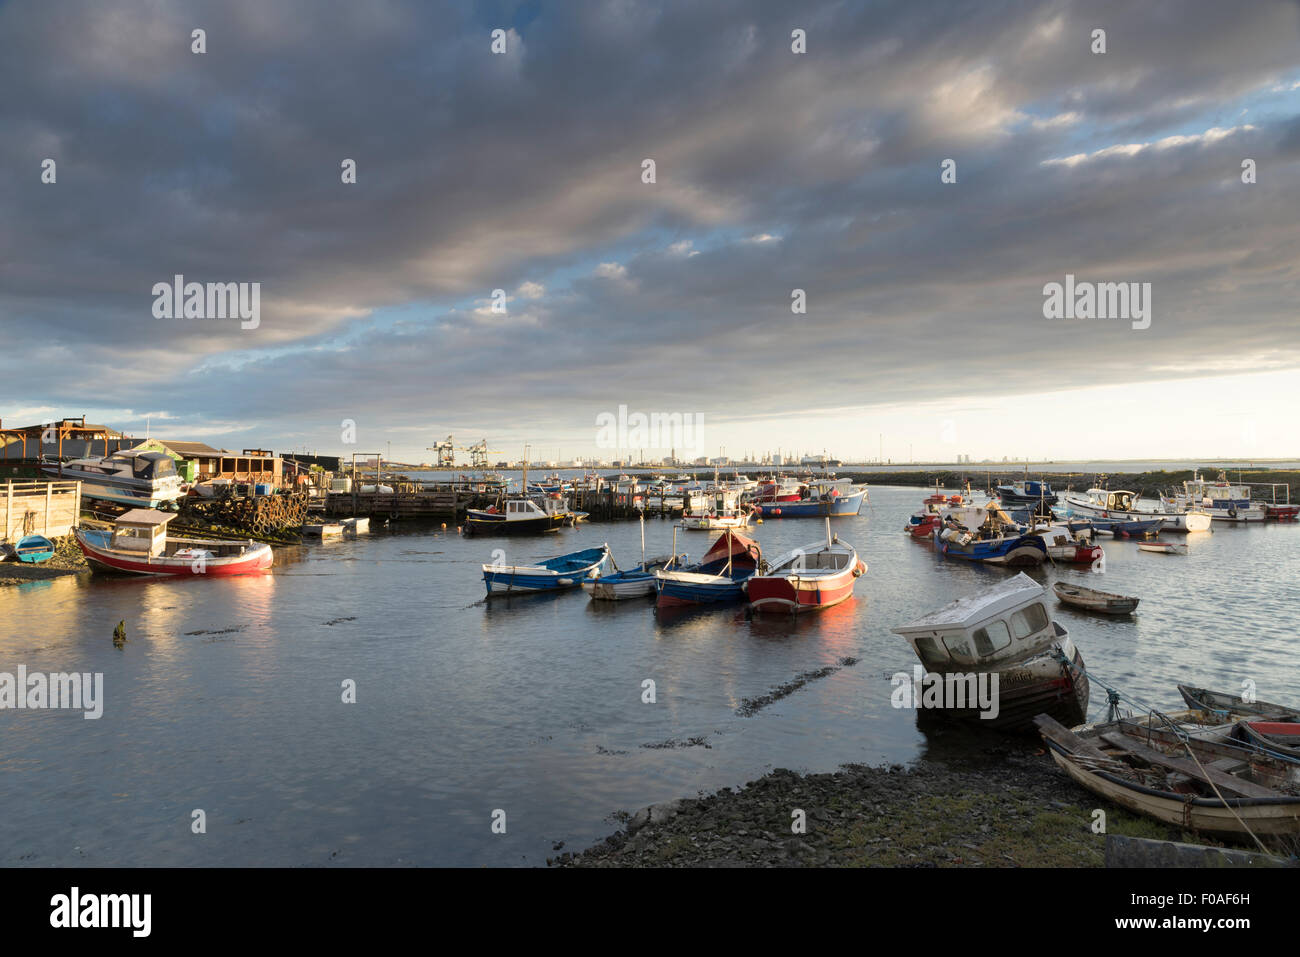 Paddy's Hole at South Gare, Redcar, Cleveland, August 2015. - Stock Image